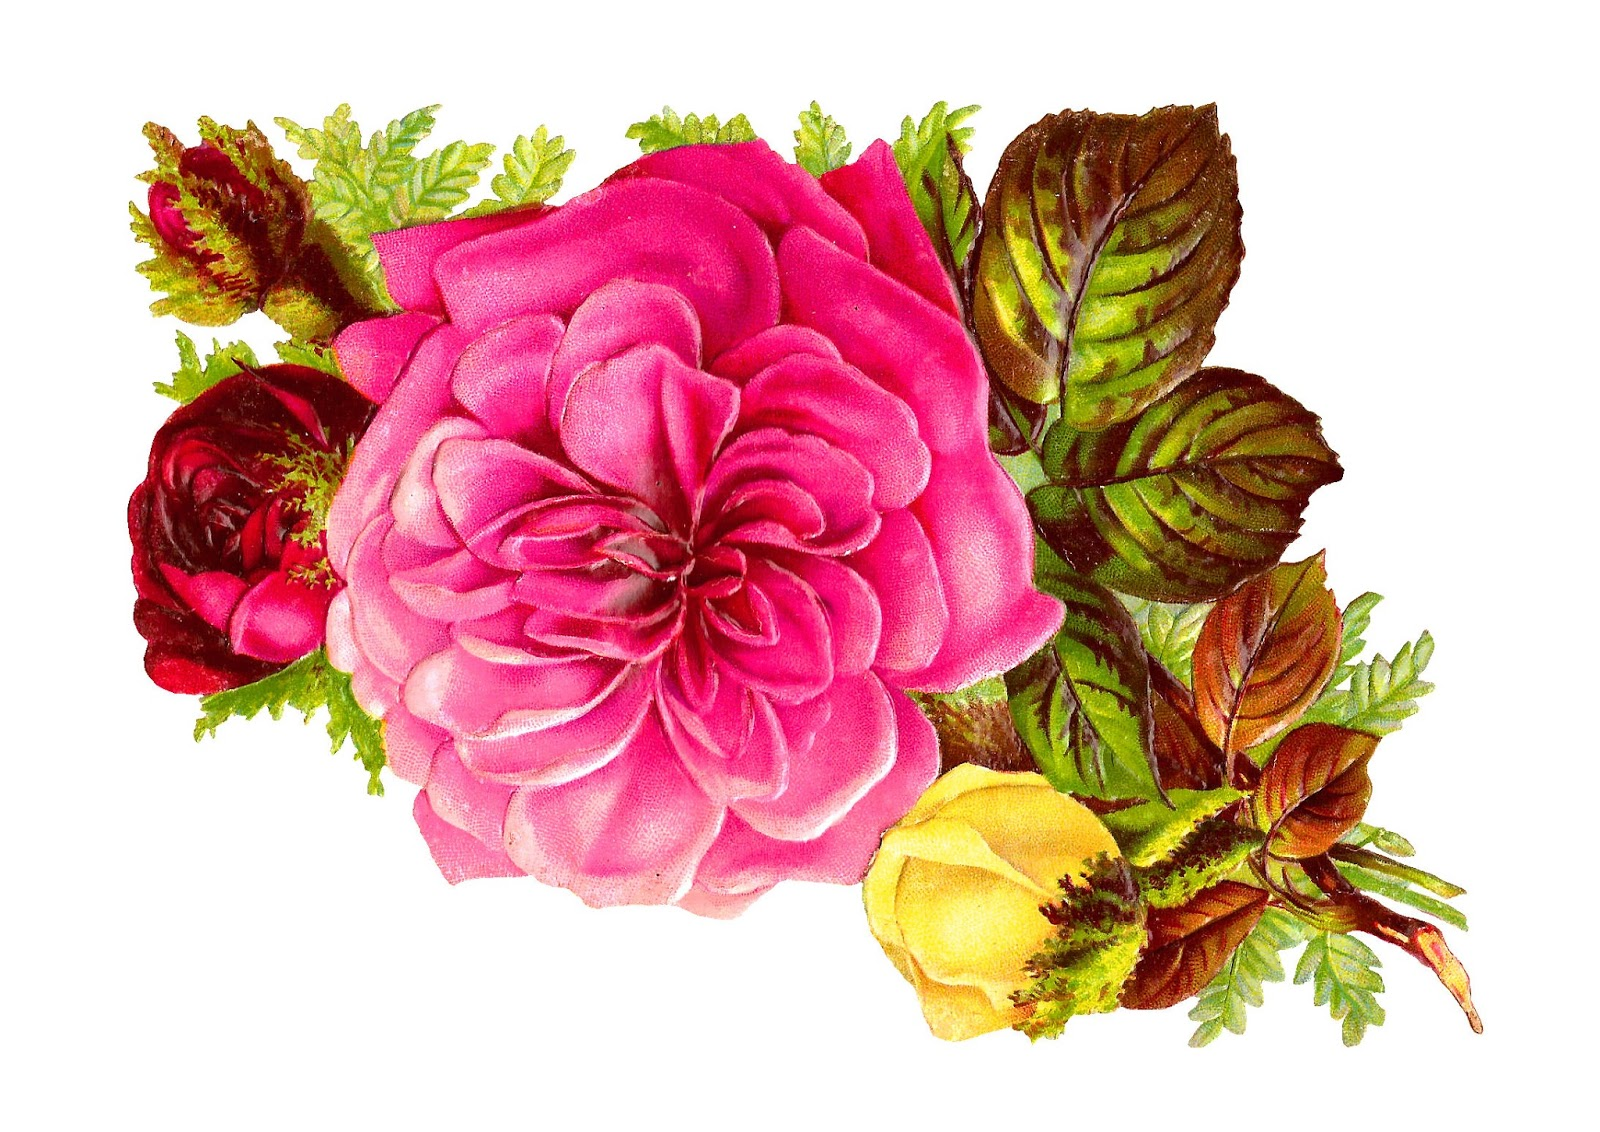 Antique images rose bouquet clip art of pink red and yellow flowers rose flower bouquet clip art mightylinksfo